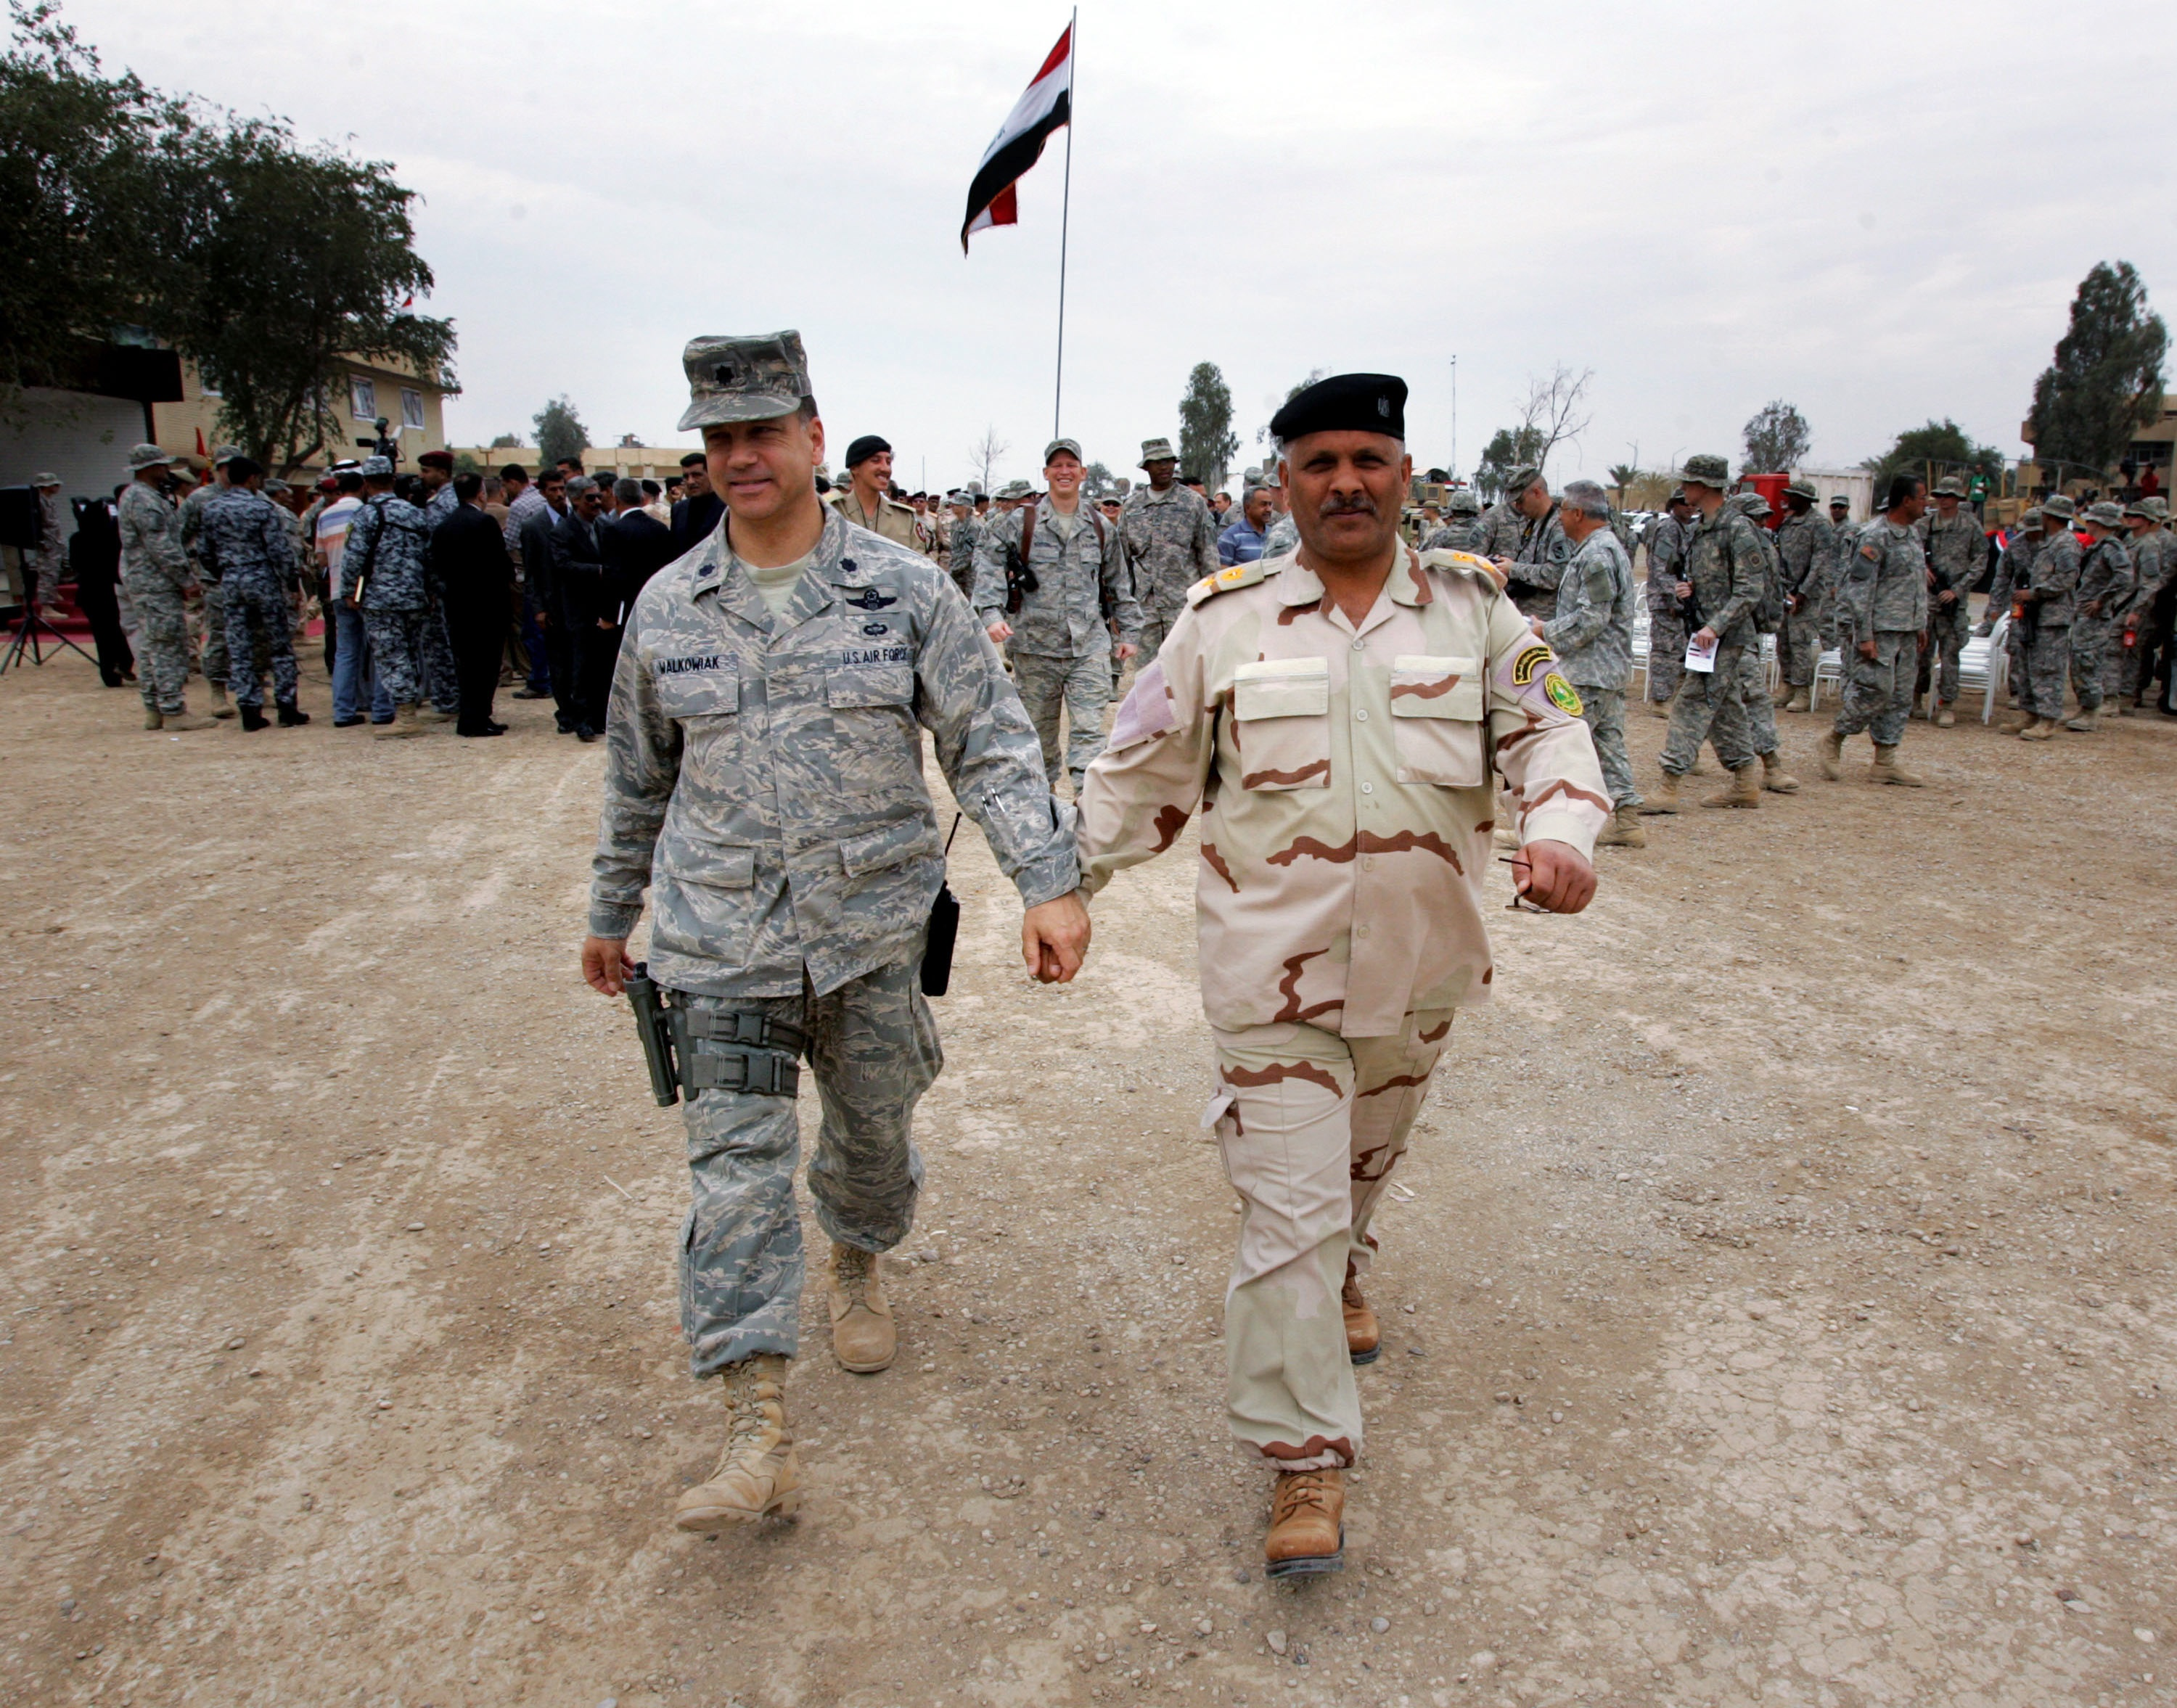 Wathiq Khuzaie/Getty Images. BAGHDAD, IRAQ, MARCH 31: An Iraqi Army officer (R) holds the hand of a U.S Army officer during a handover ceremony at Camp Rustimiyah March 31, 2009 in Baghdad, Iraq.